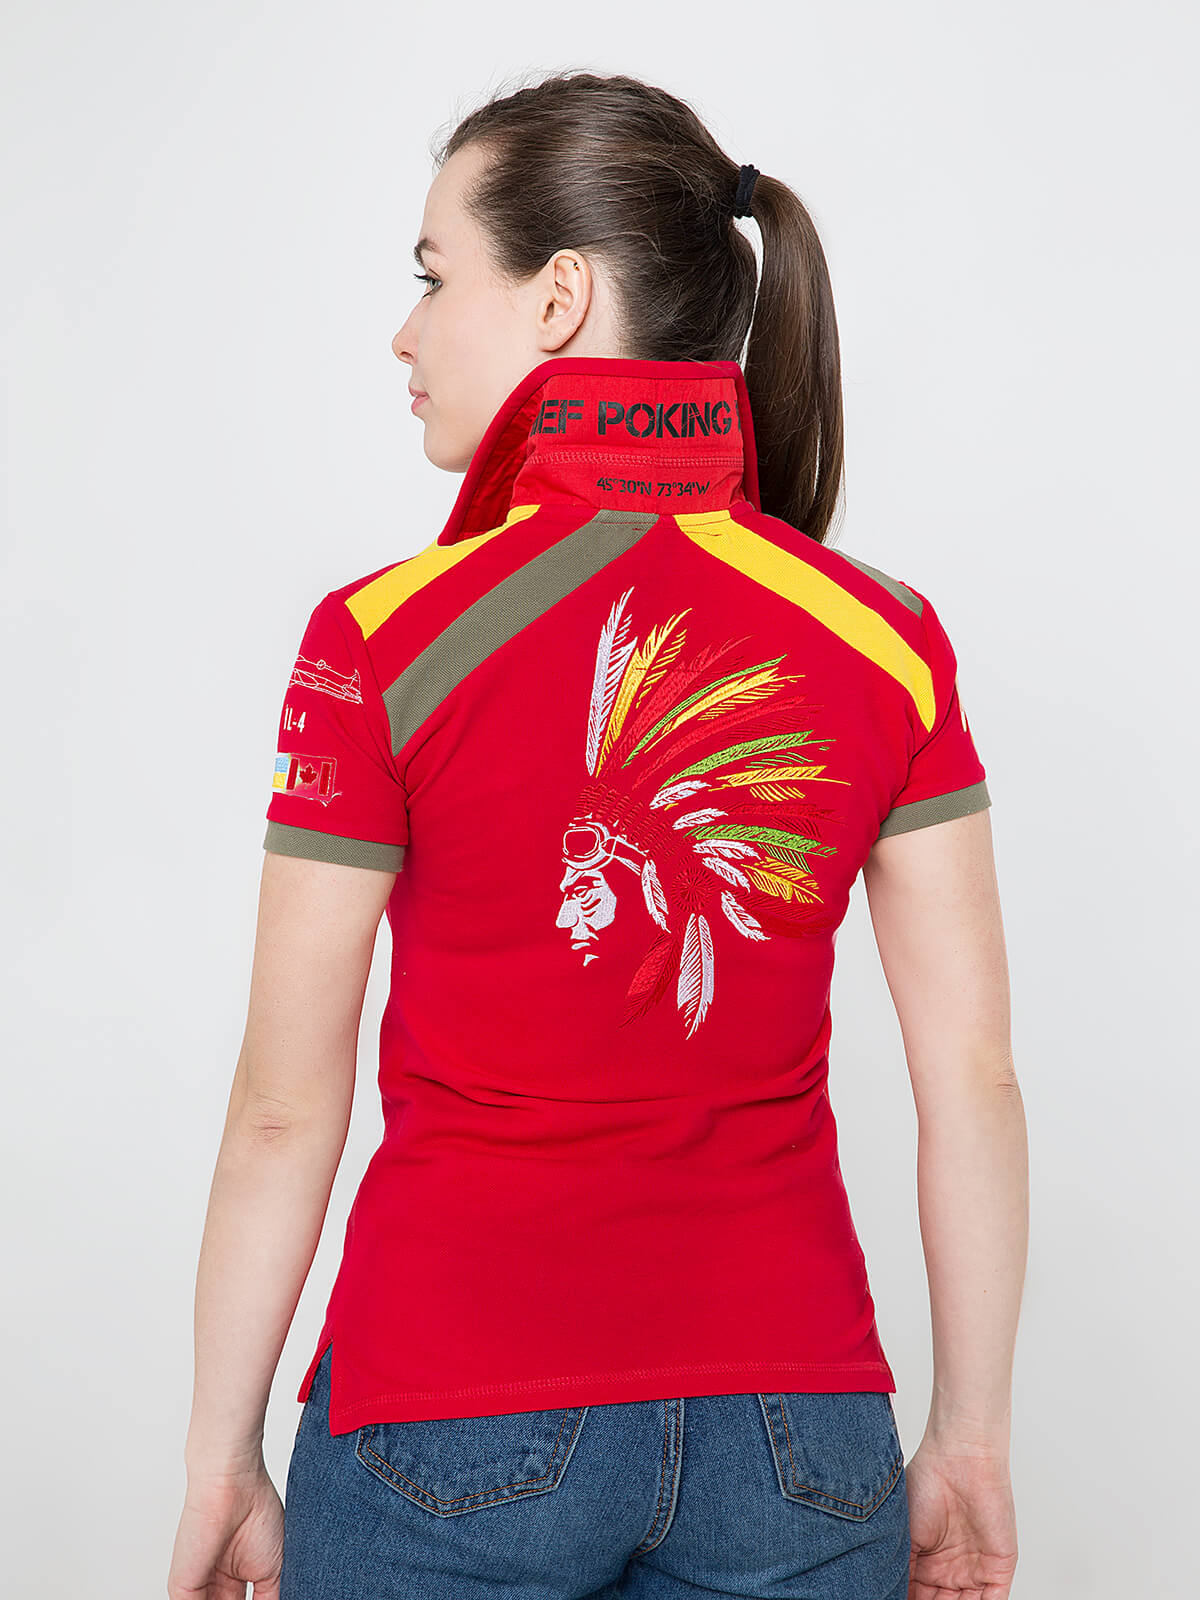 Women's Polo Shirt Indian. Color red.  Technique of prints applied: embroidery, silkscreen printing.